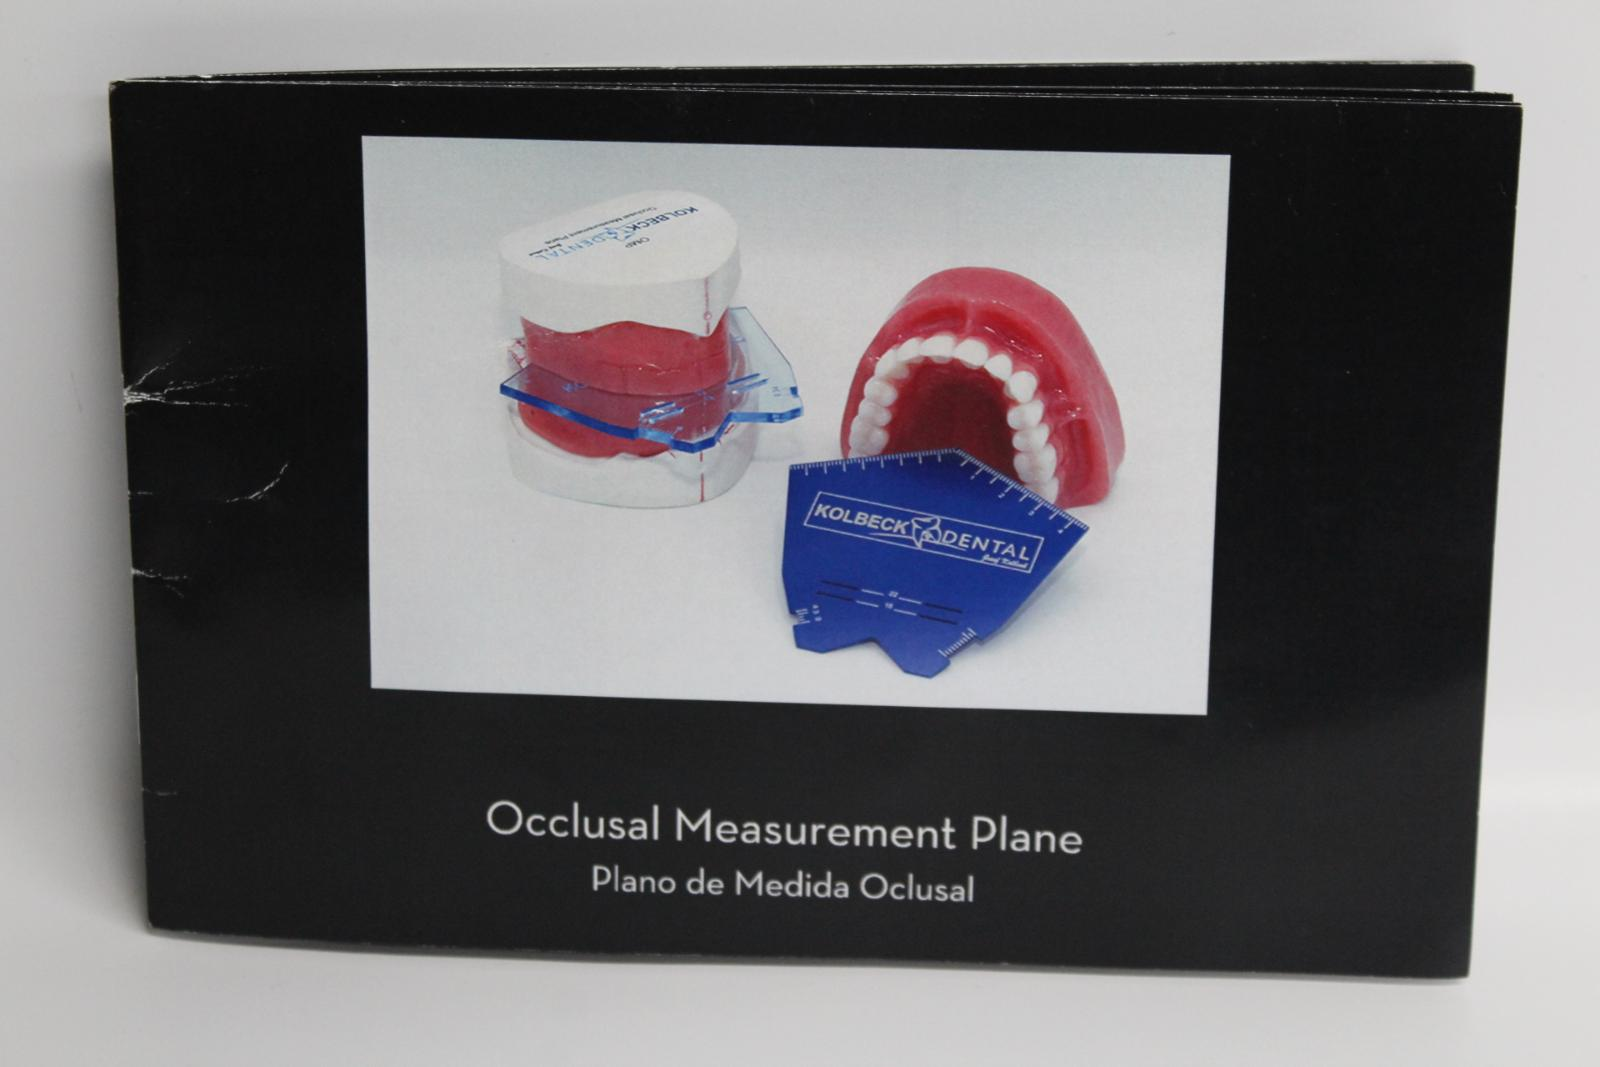 KOLBECK Blue Dental Teeth Occlusal Measurement Plane With Instruction Guide 2